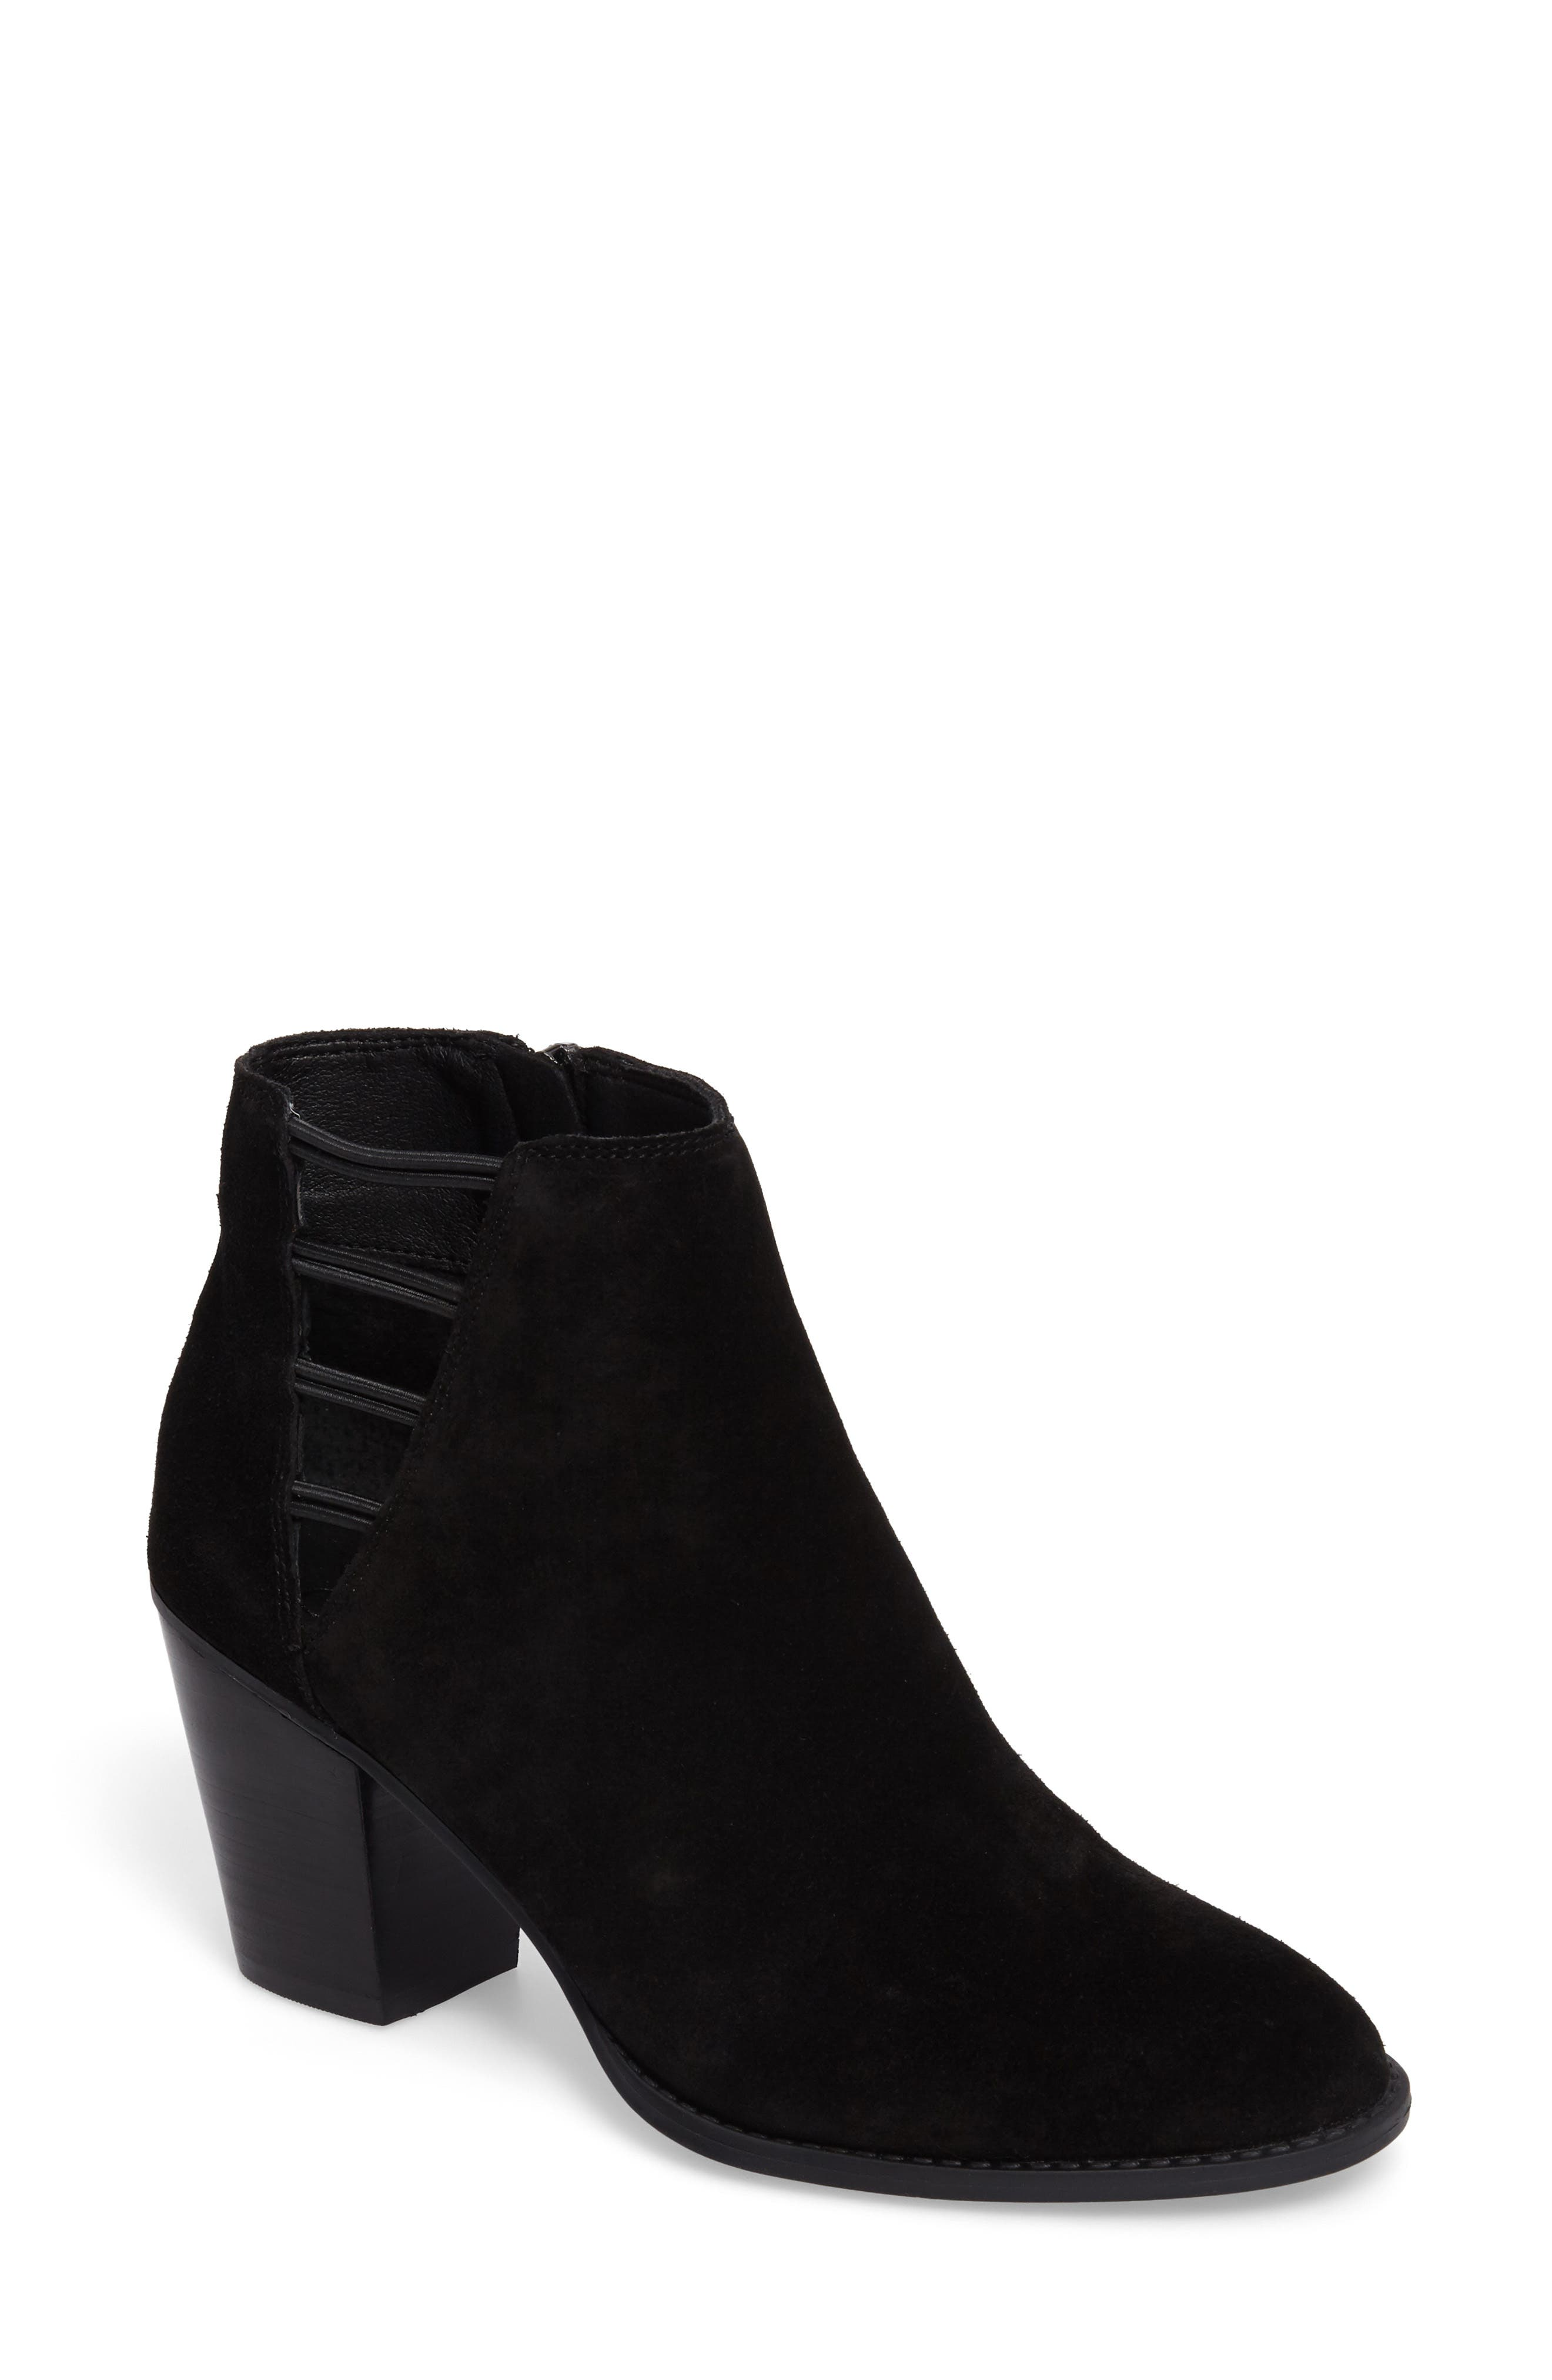 Yasma Bootie,                         Main,                         color, Black Suede